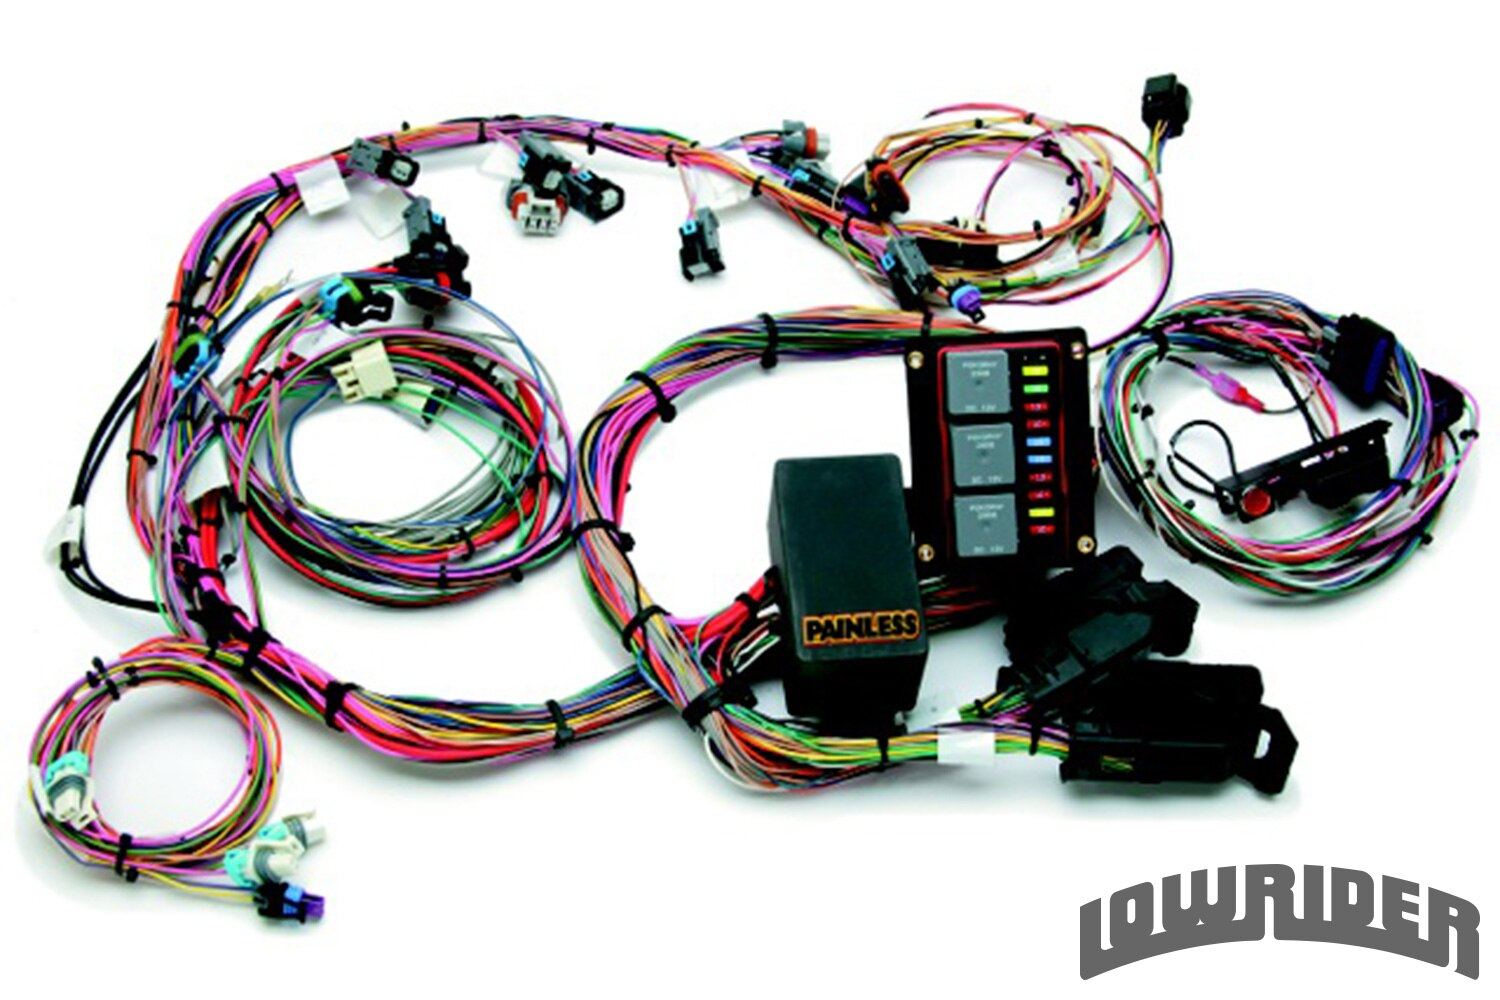 lowrider new products march 2014 painless performance LS harness lowrider new products march 2014 lowrider magazine painless ls wiring harness at highcare.asia